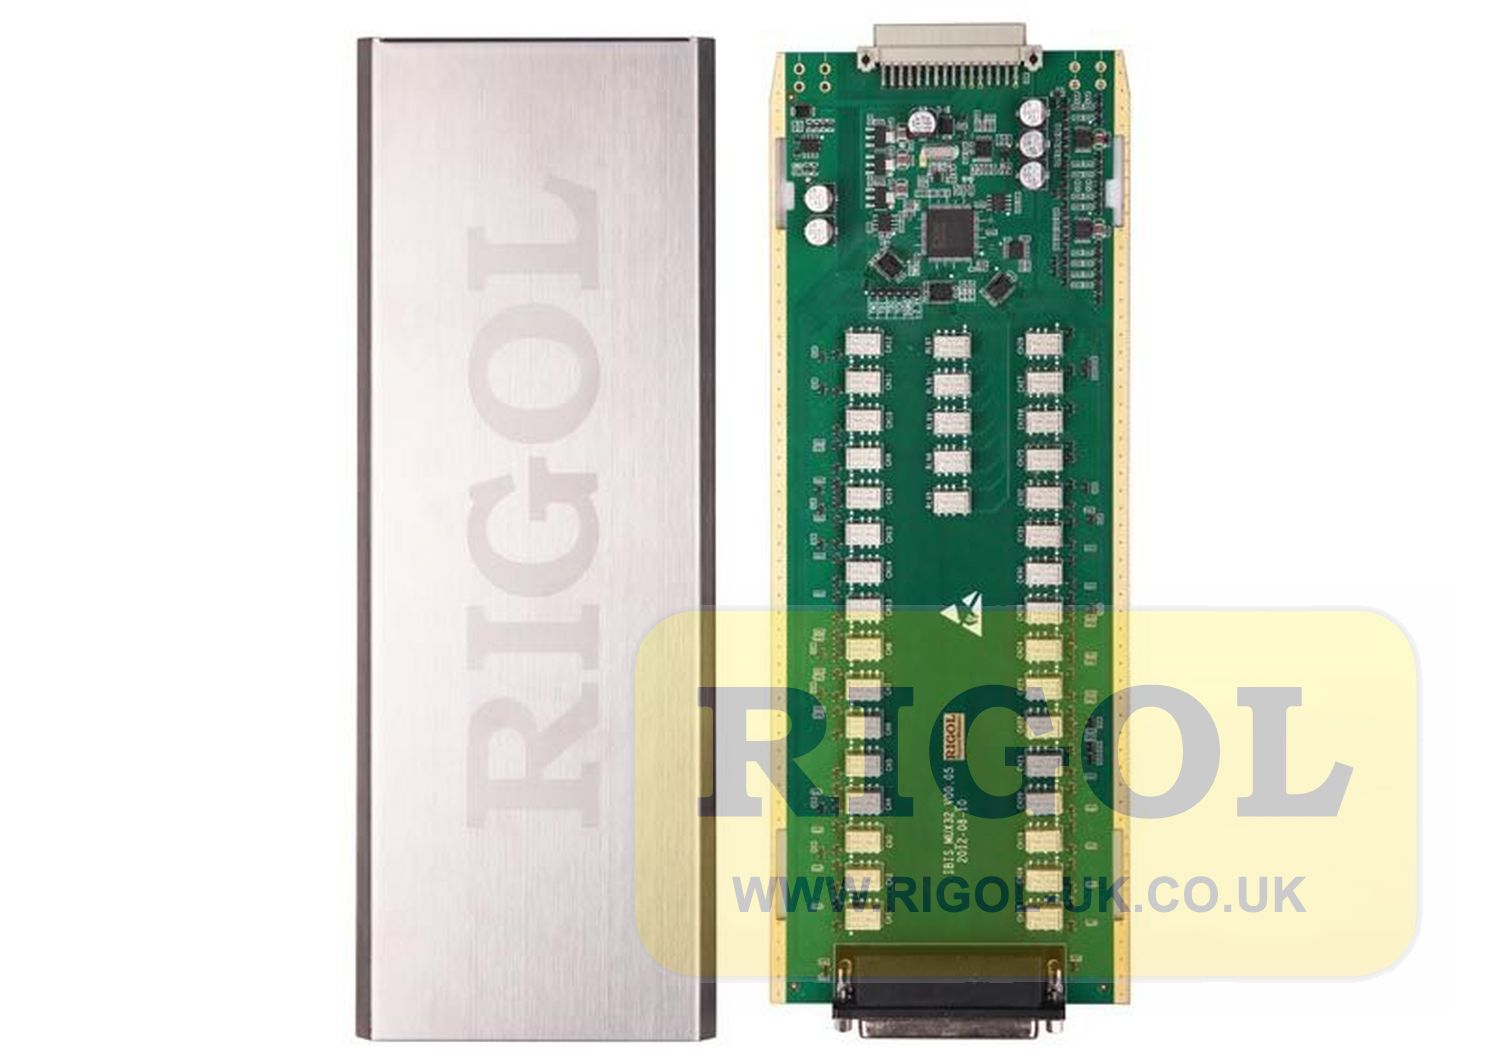 Rigol MC3164 64 Channel Single Ended Multiplexer Module